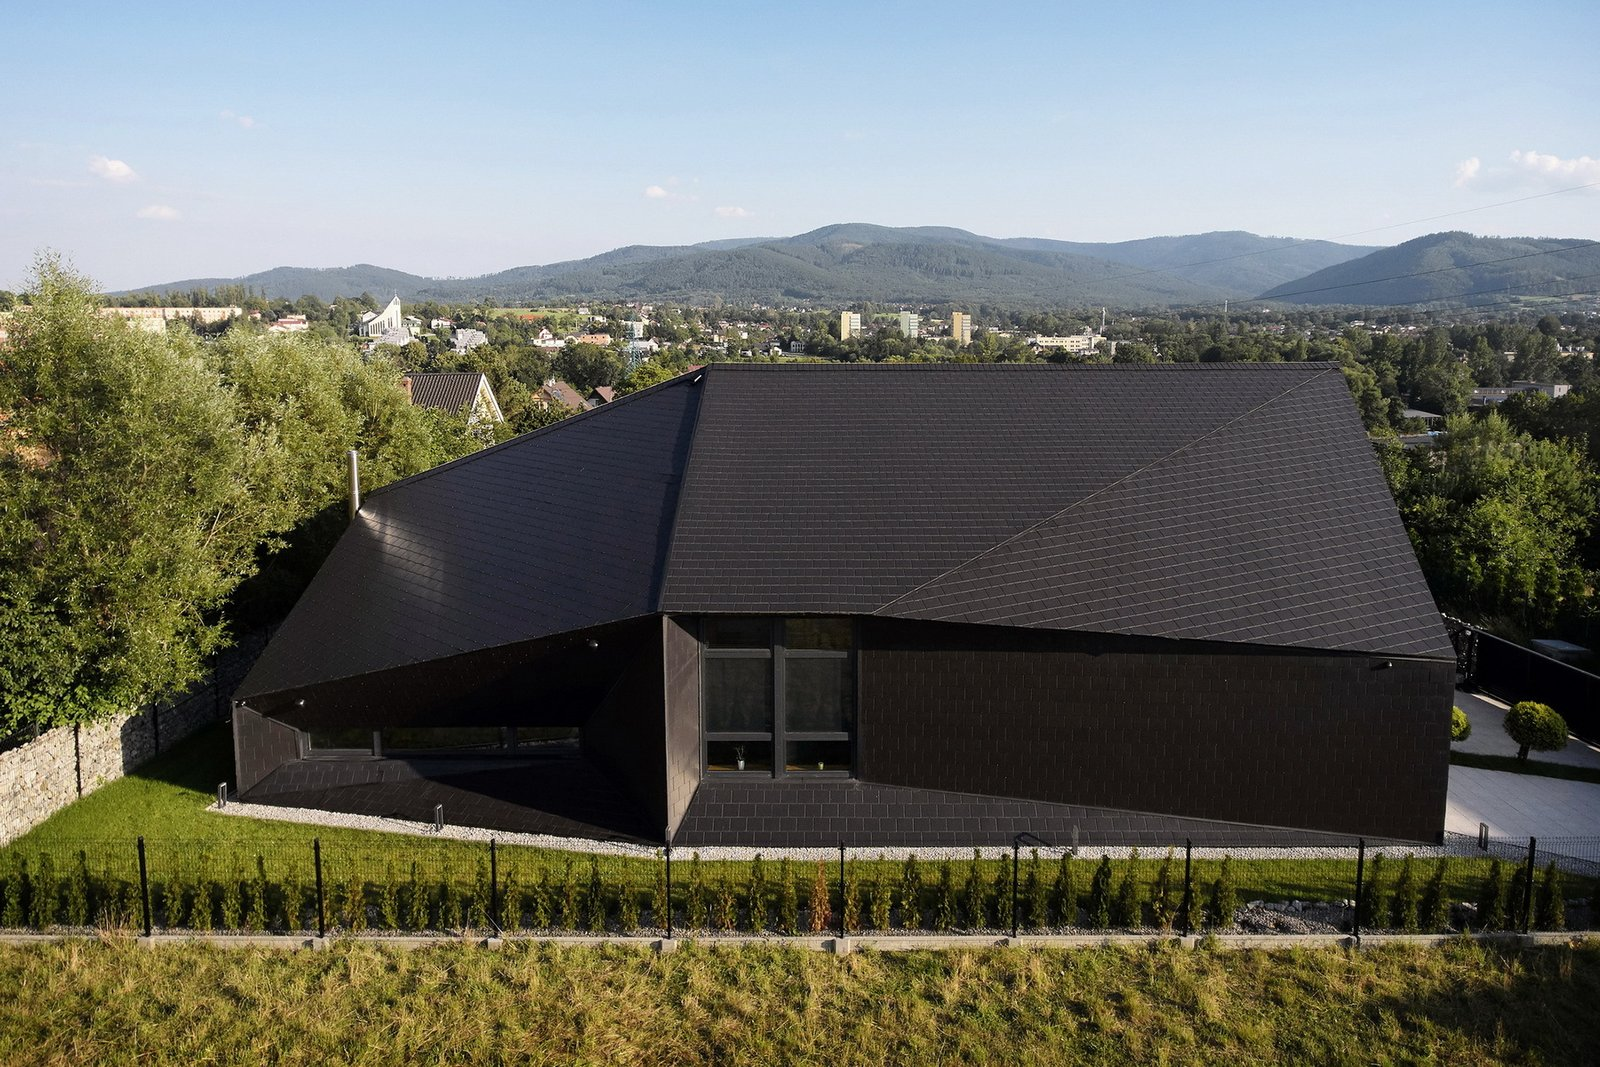 Exterior, House Building Type, Stone Siding Material, Tile Roof Material, and Gable RoofLine Aerial view from the north - house and the mountains.  BLACK ROCK by MUS ARCHITECTS